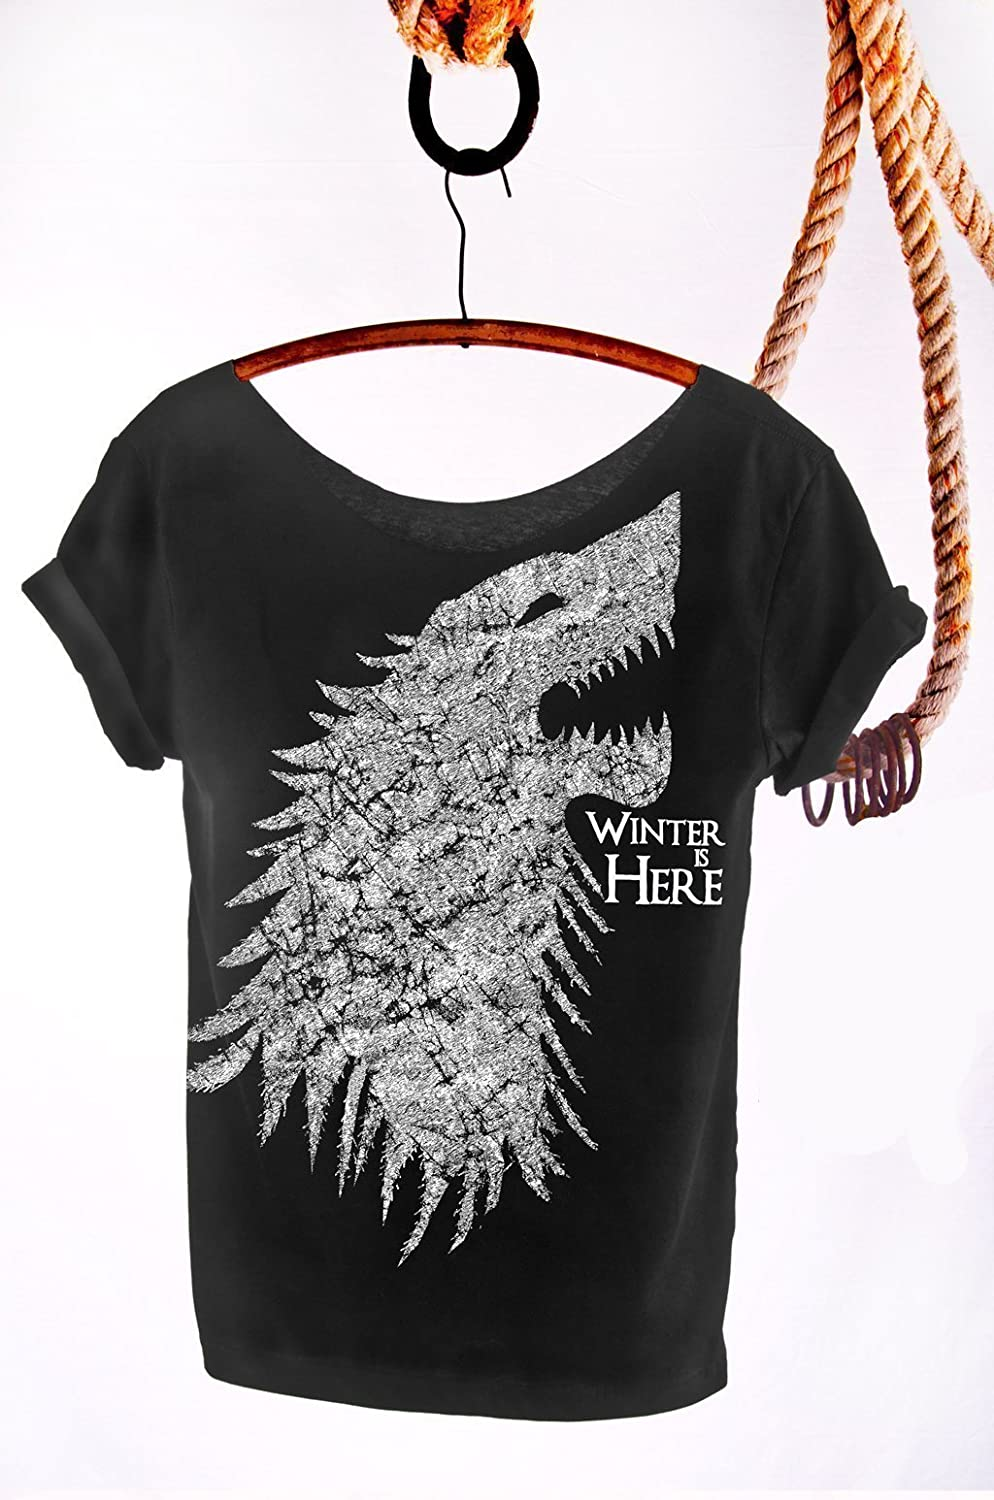 01e2286e5d45 Amazon.com: Winter is Here Game of Thrones T Shirt. Slouchy, Off The  Shoulder, Sexy Top! Tunic Length Tee Great for Leggings! Plus Sizes  Available!: